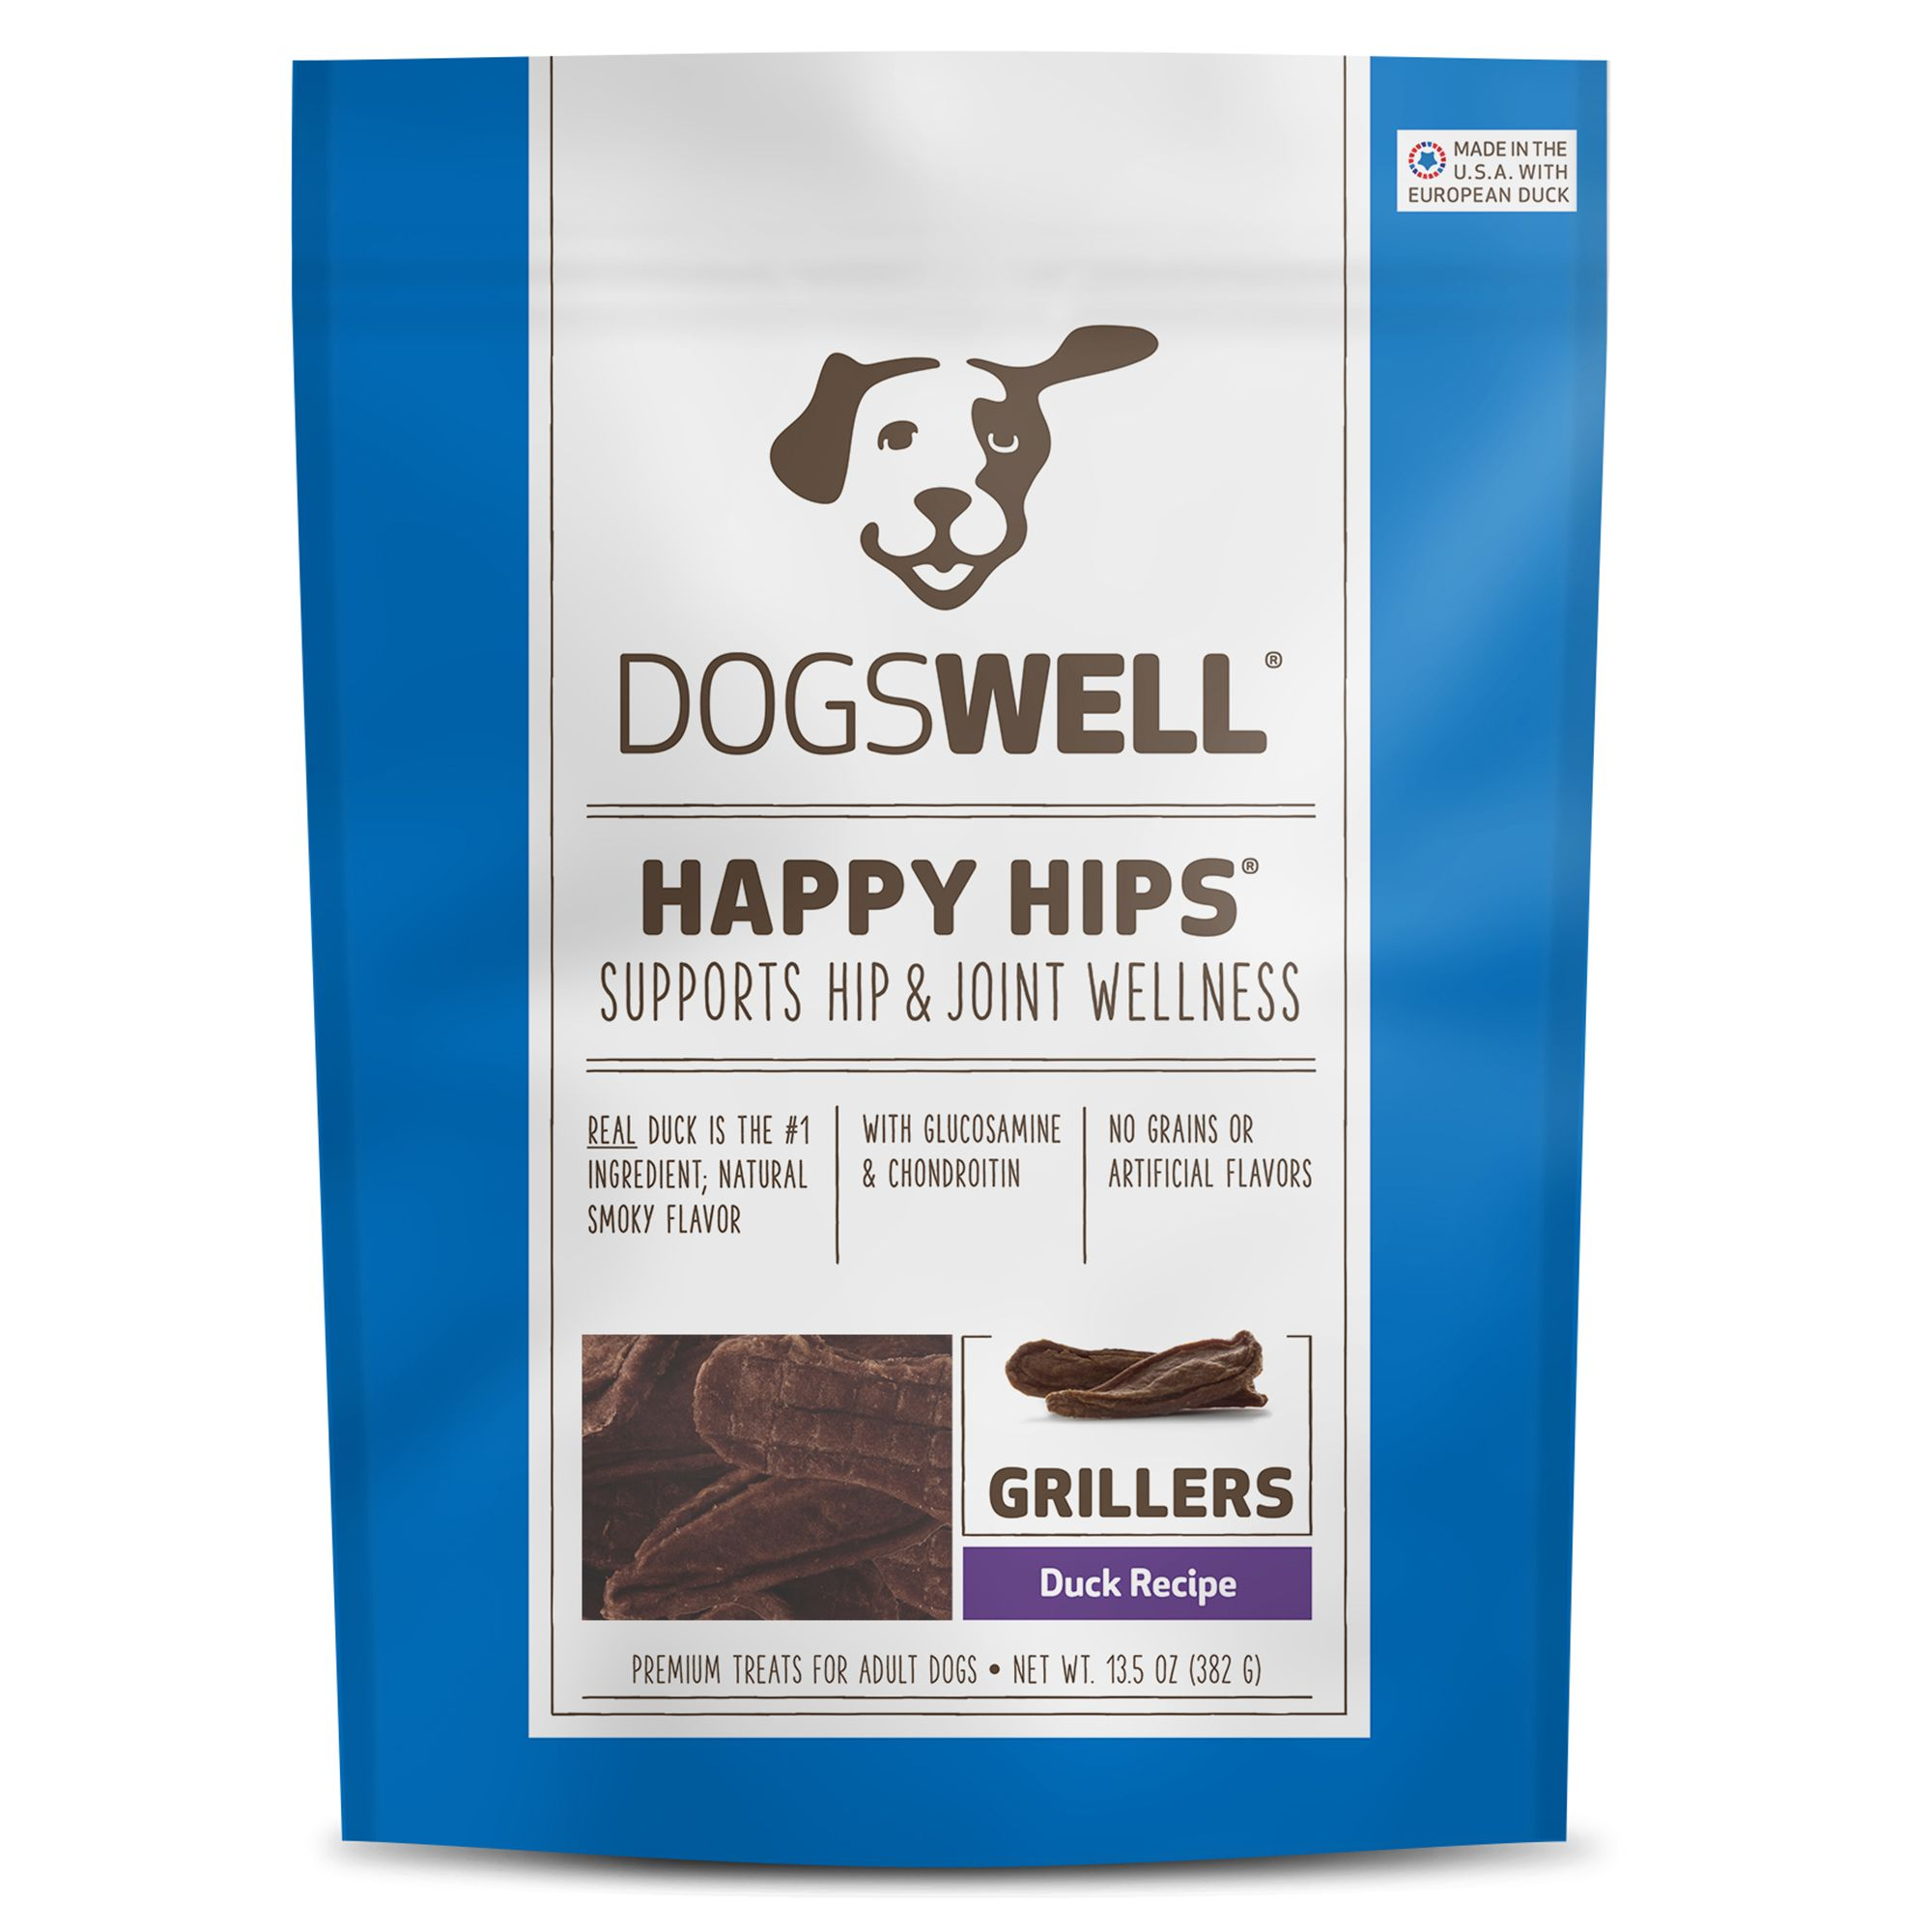 Dogswell Happy Hips Grillers Dog Treat - Grain Free, Duck size: 13.5 Oz, Griller Treat, Adult 5271915